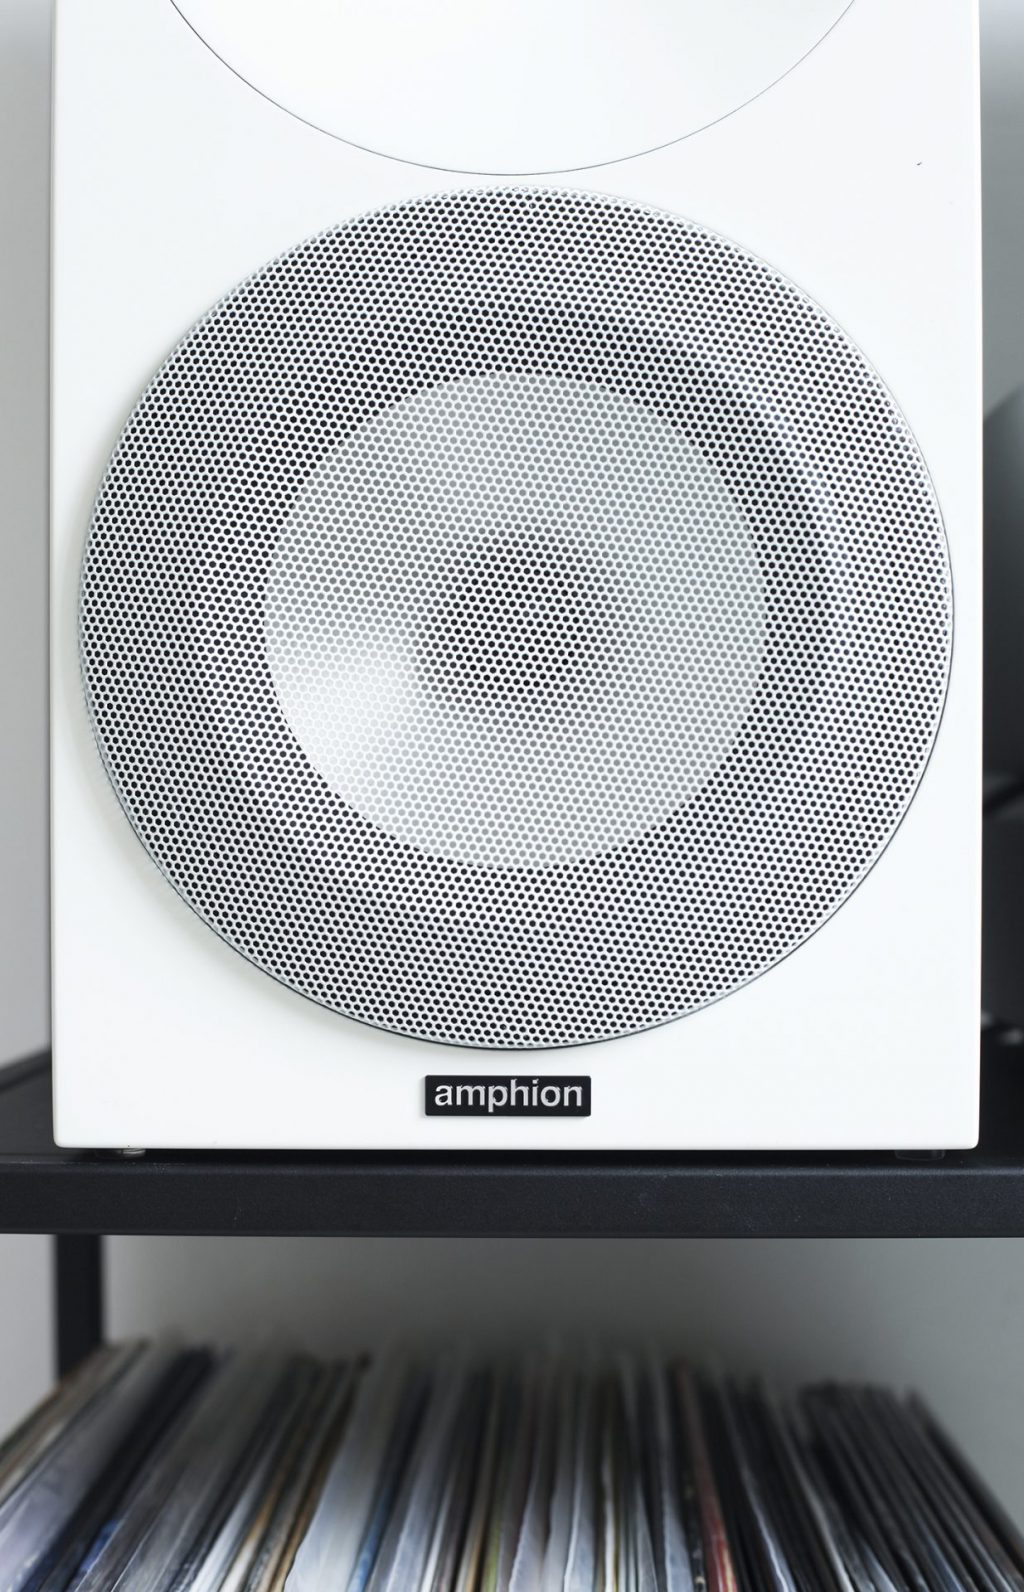 Amphion for Amphion by Susanna Vento